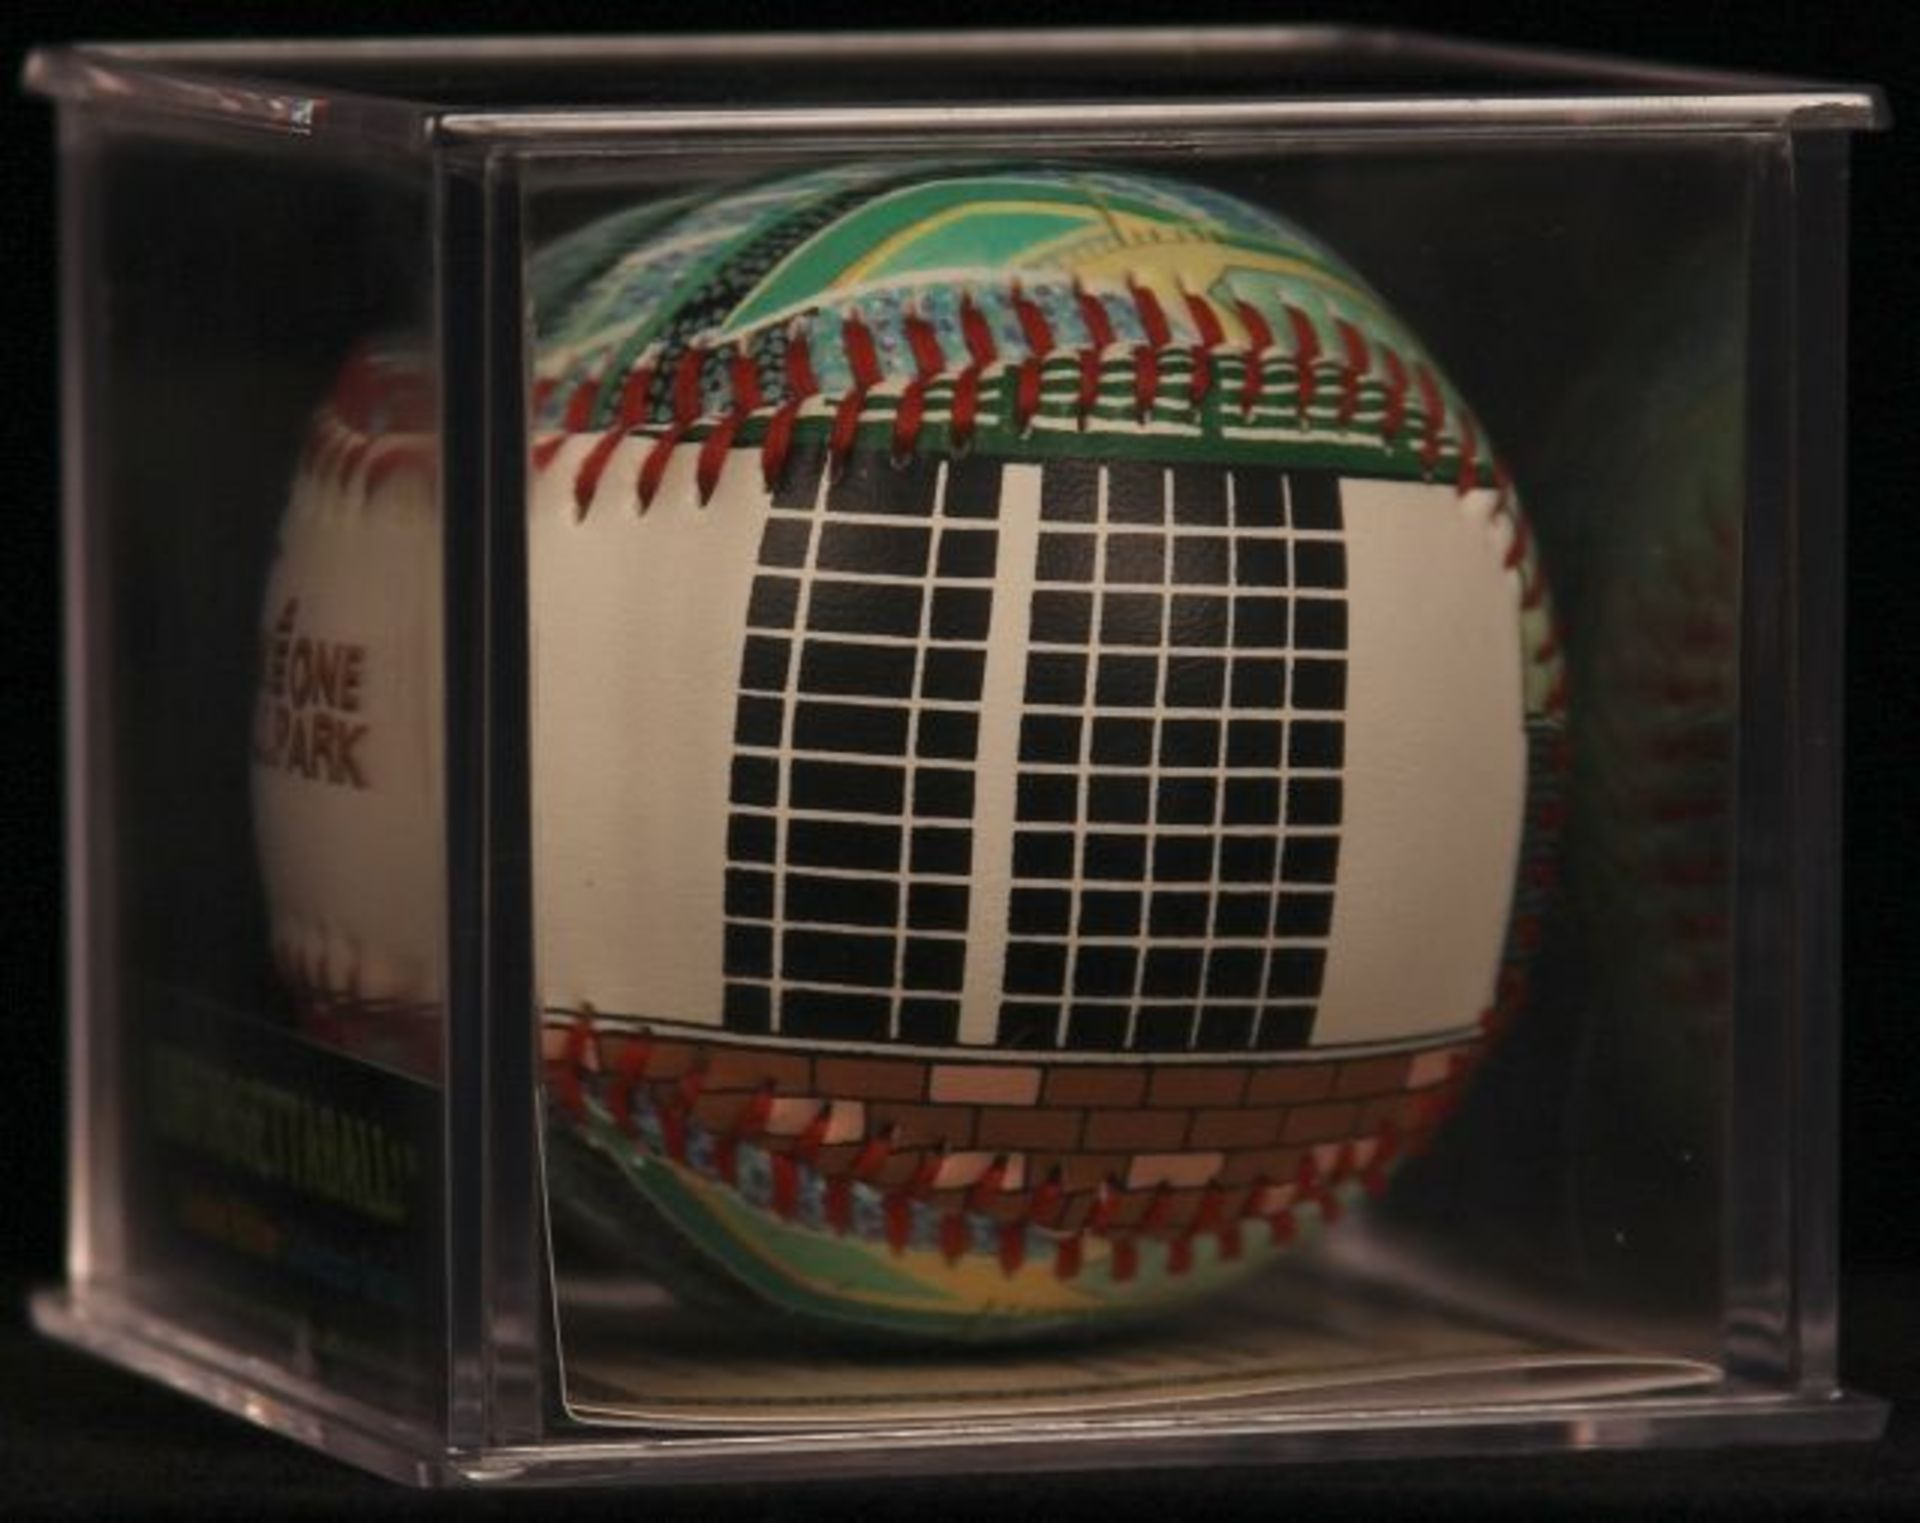 "Unforgettaball! ""Bank One Ballpark"" Collectable Baseball - Image 3 of 6"